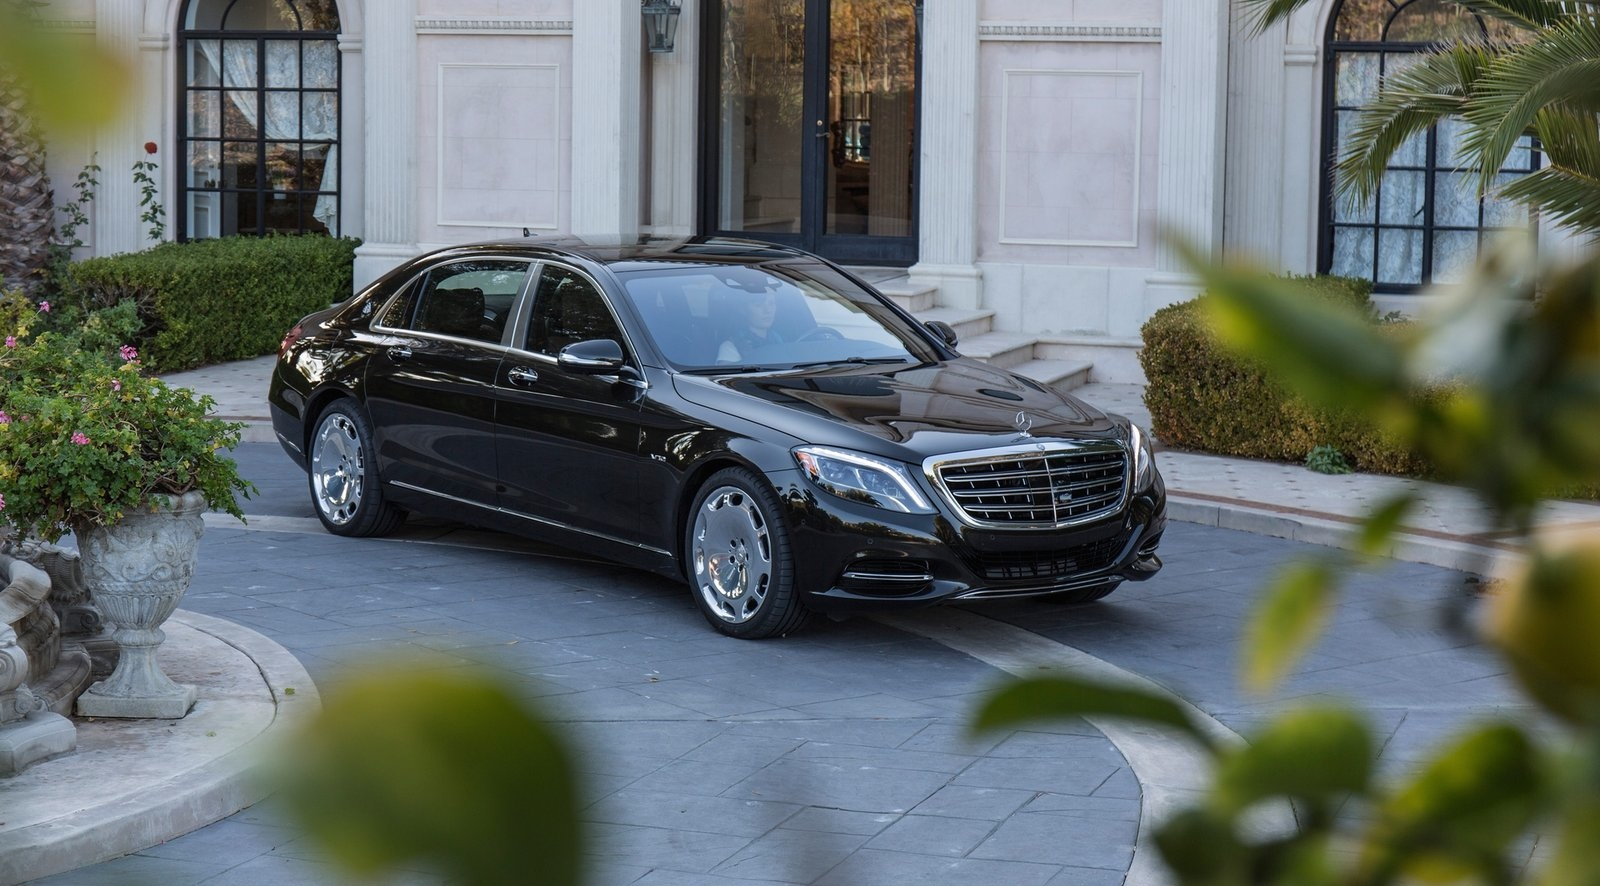 mercedes maybach s650 landaulet c est pour paris luxury car magazine. Black Bedroom Furniture Sets. Home Design Ideas